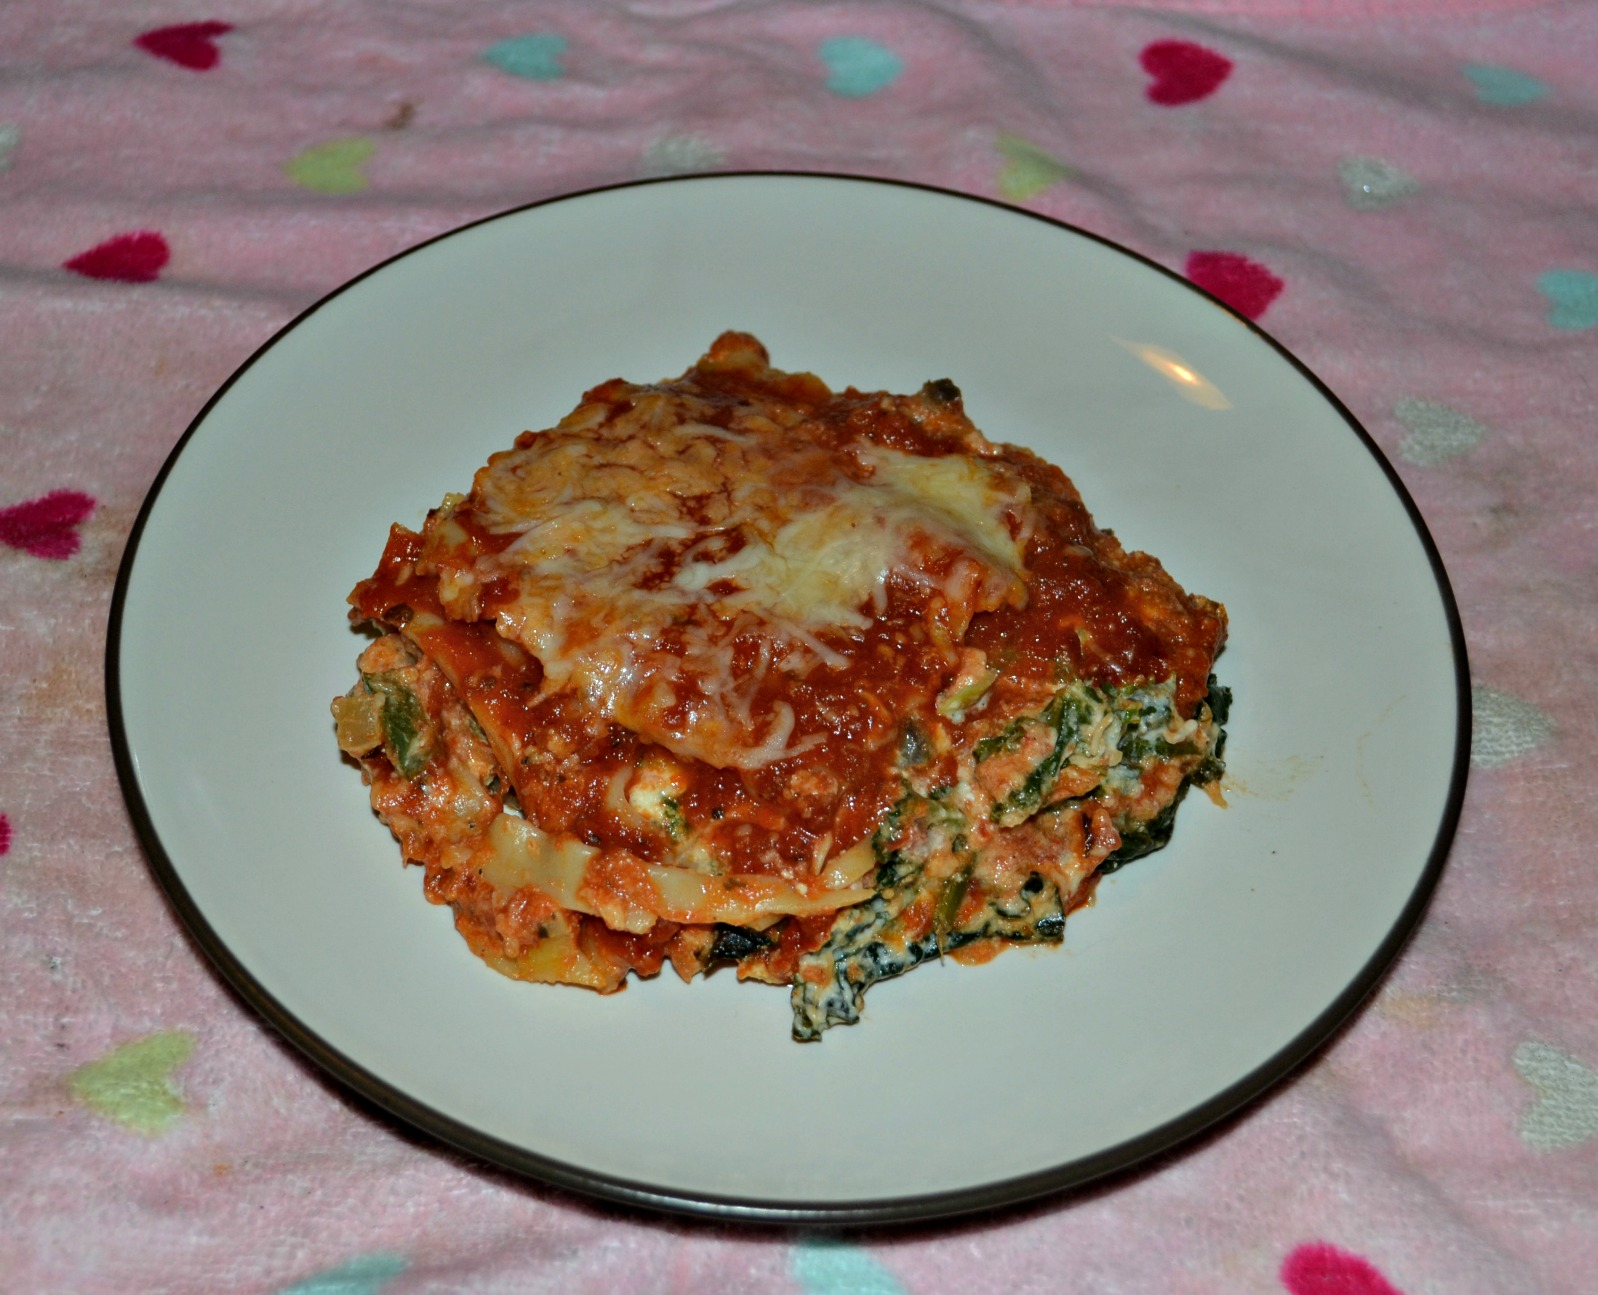 Vegetable Lasagna with Vodka Sauce - Hezzi-D's Books and Cooks